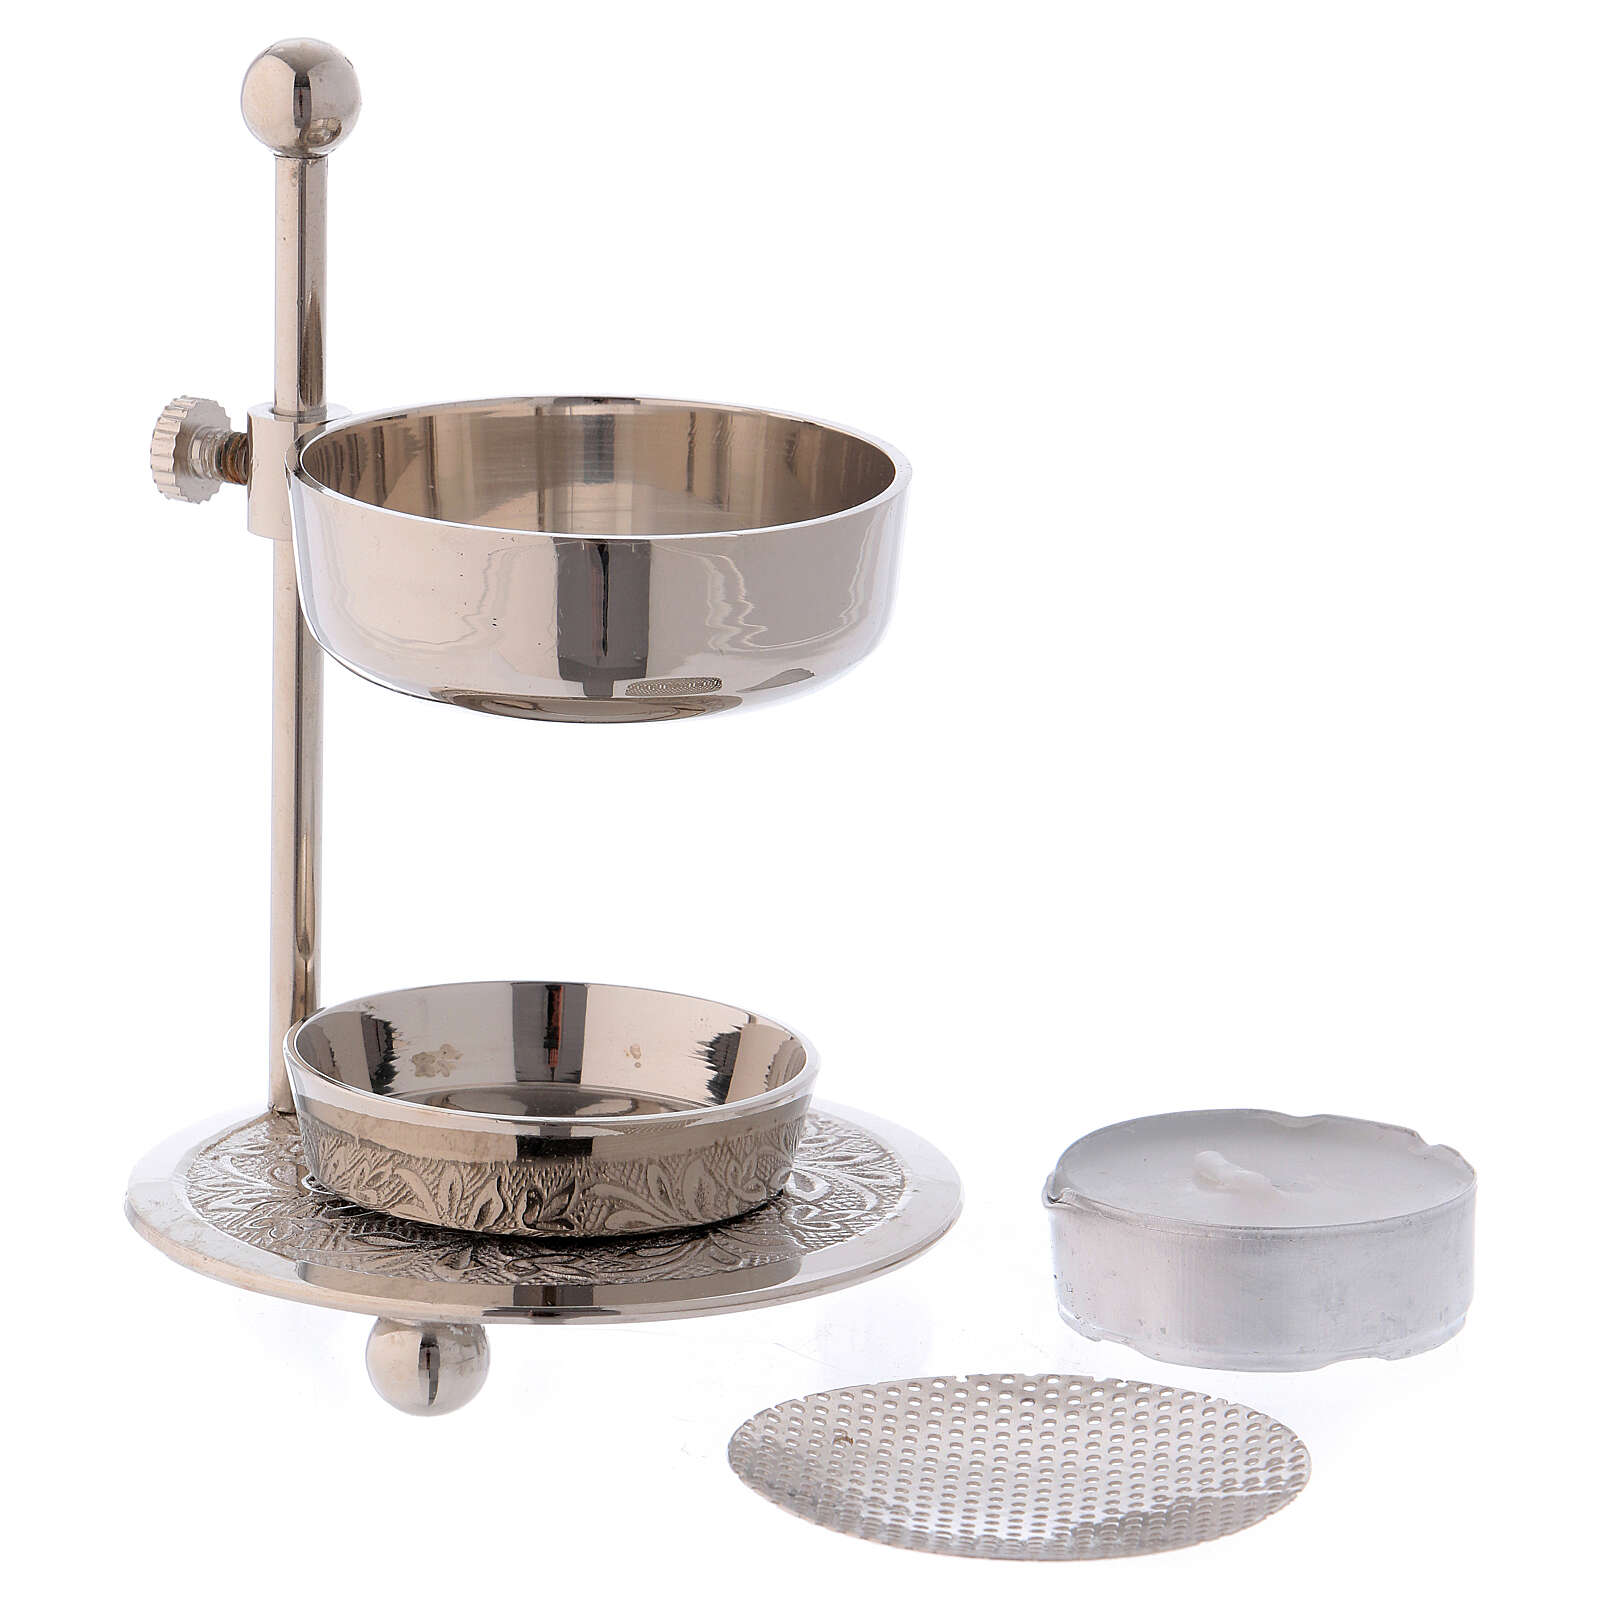 Incense burner in silver-plated brass h 4 1/4 in 3